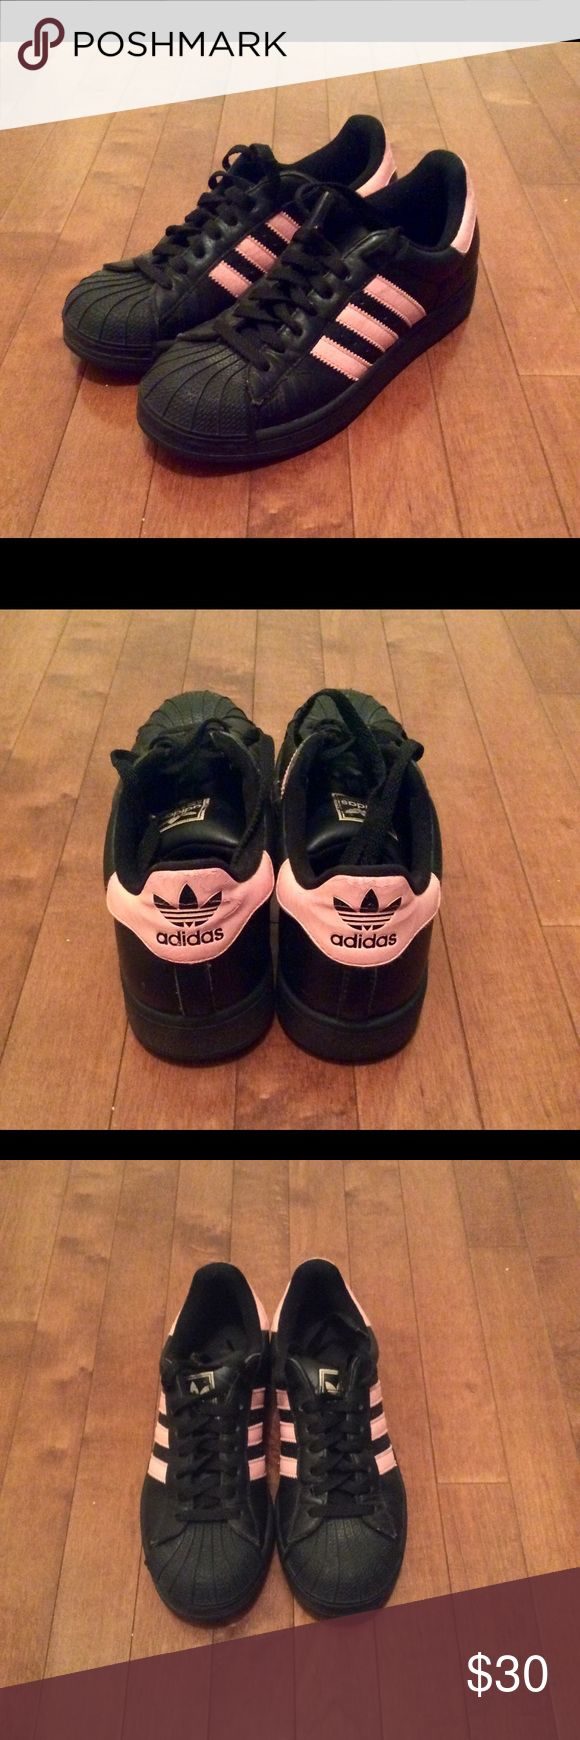 Adidas sneakers Black and pink Adidas shell top sneakers. Very comfortable. There is some wear to them, but they are still in really good condition, no major gashes, tears, peeling, etc. They're a 6.5 but fit more like a 7. adidas Shoes Sneakers